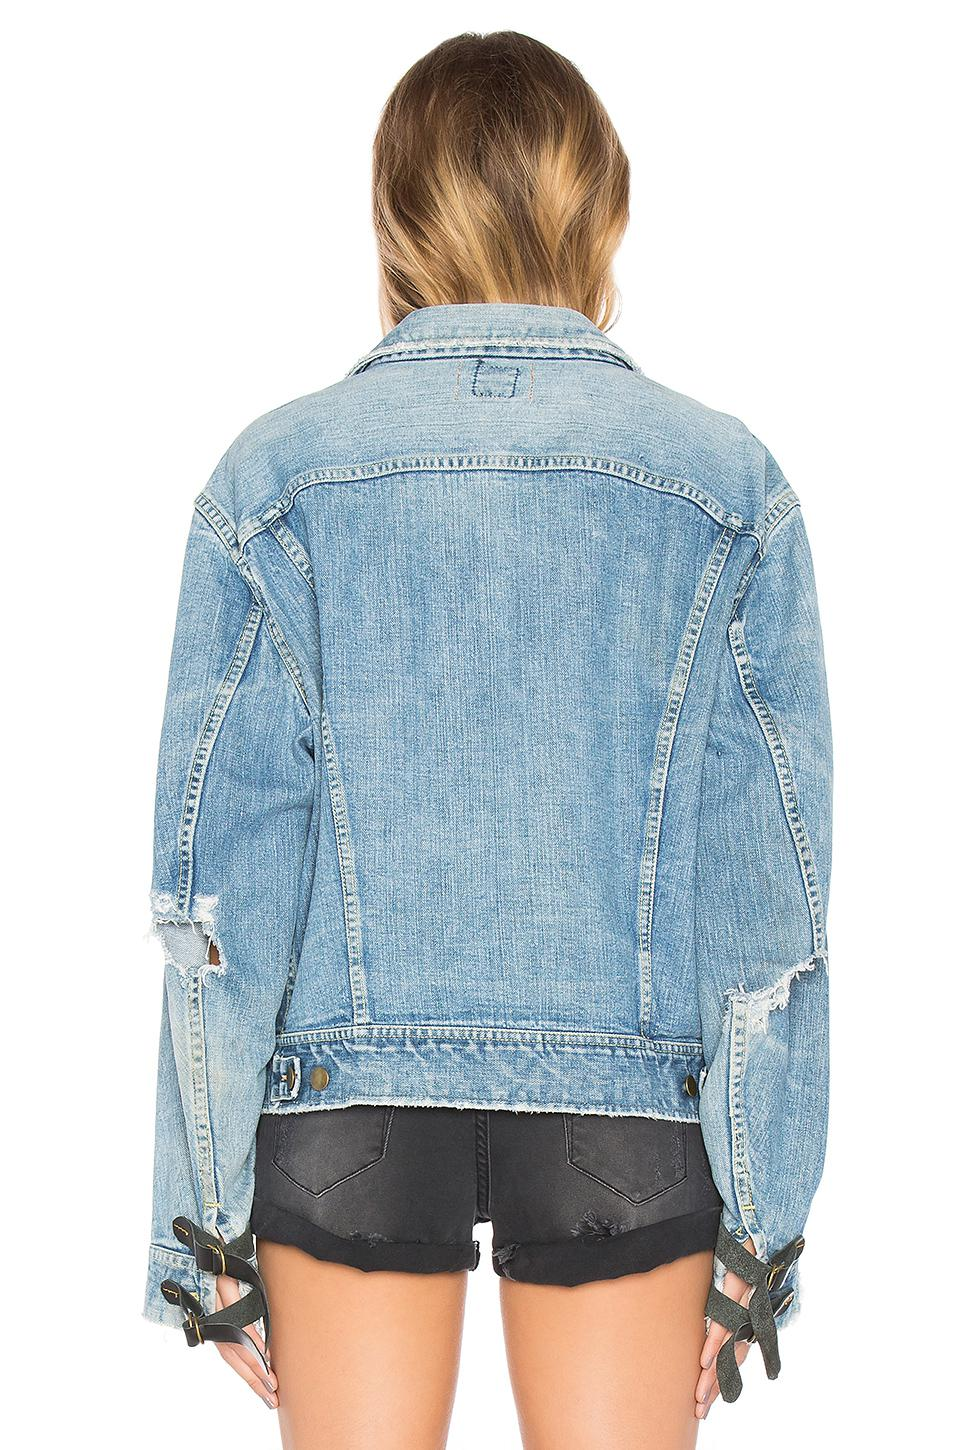 8712a04c42f Lyst - One Teaspoon The Vintage Denim Jacket in Blue